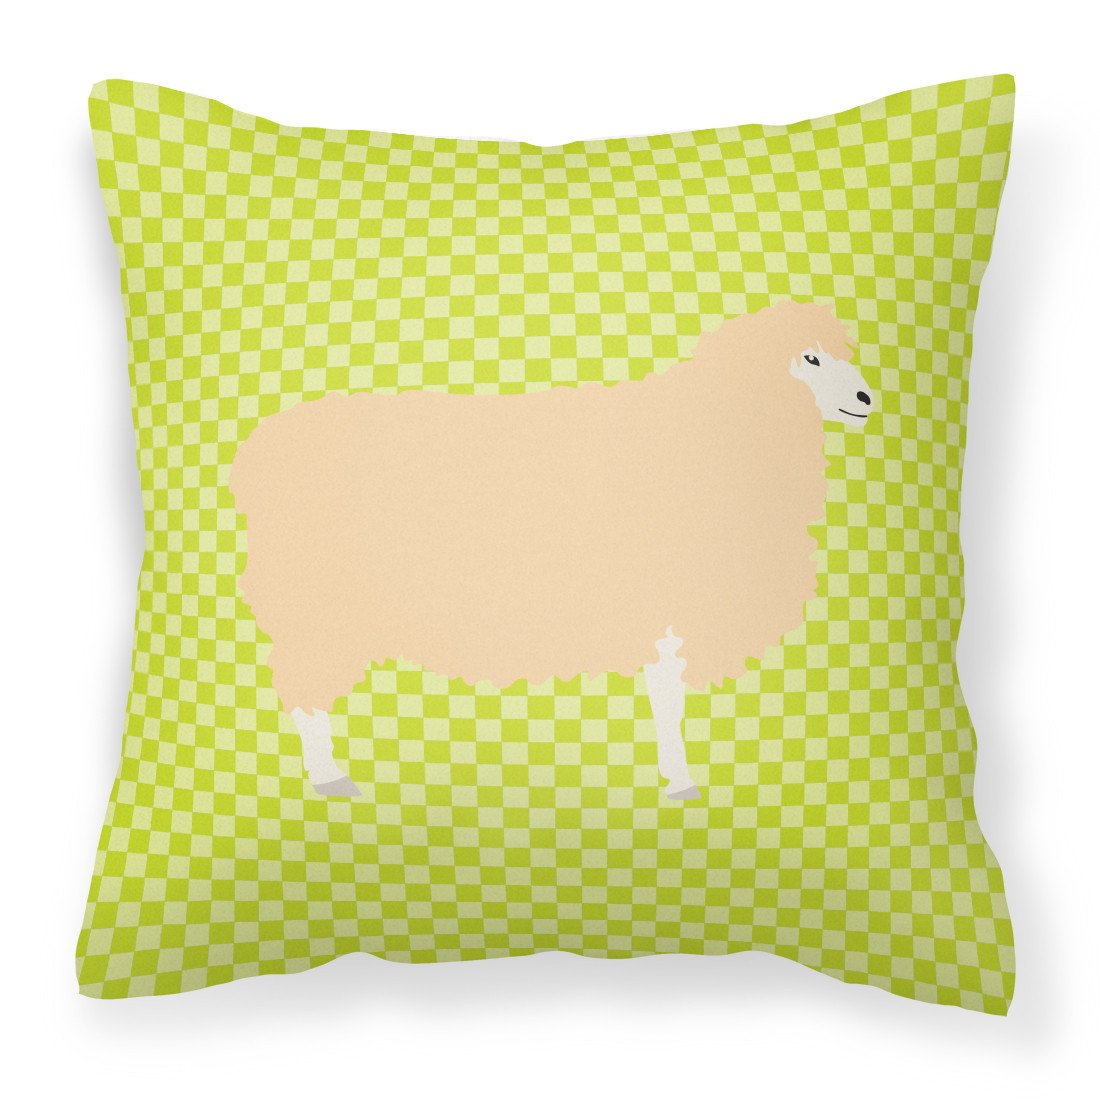 English Leicester Longwool Sheep Green Fabric Decorative Pillow BB7800PW1818 by Caroline's Treasures